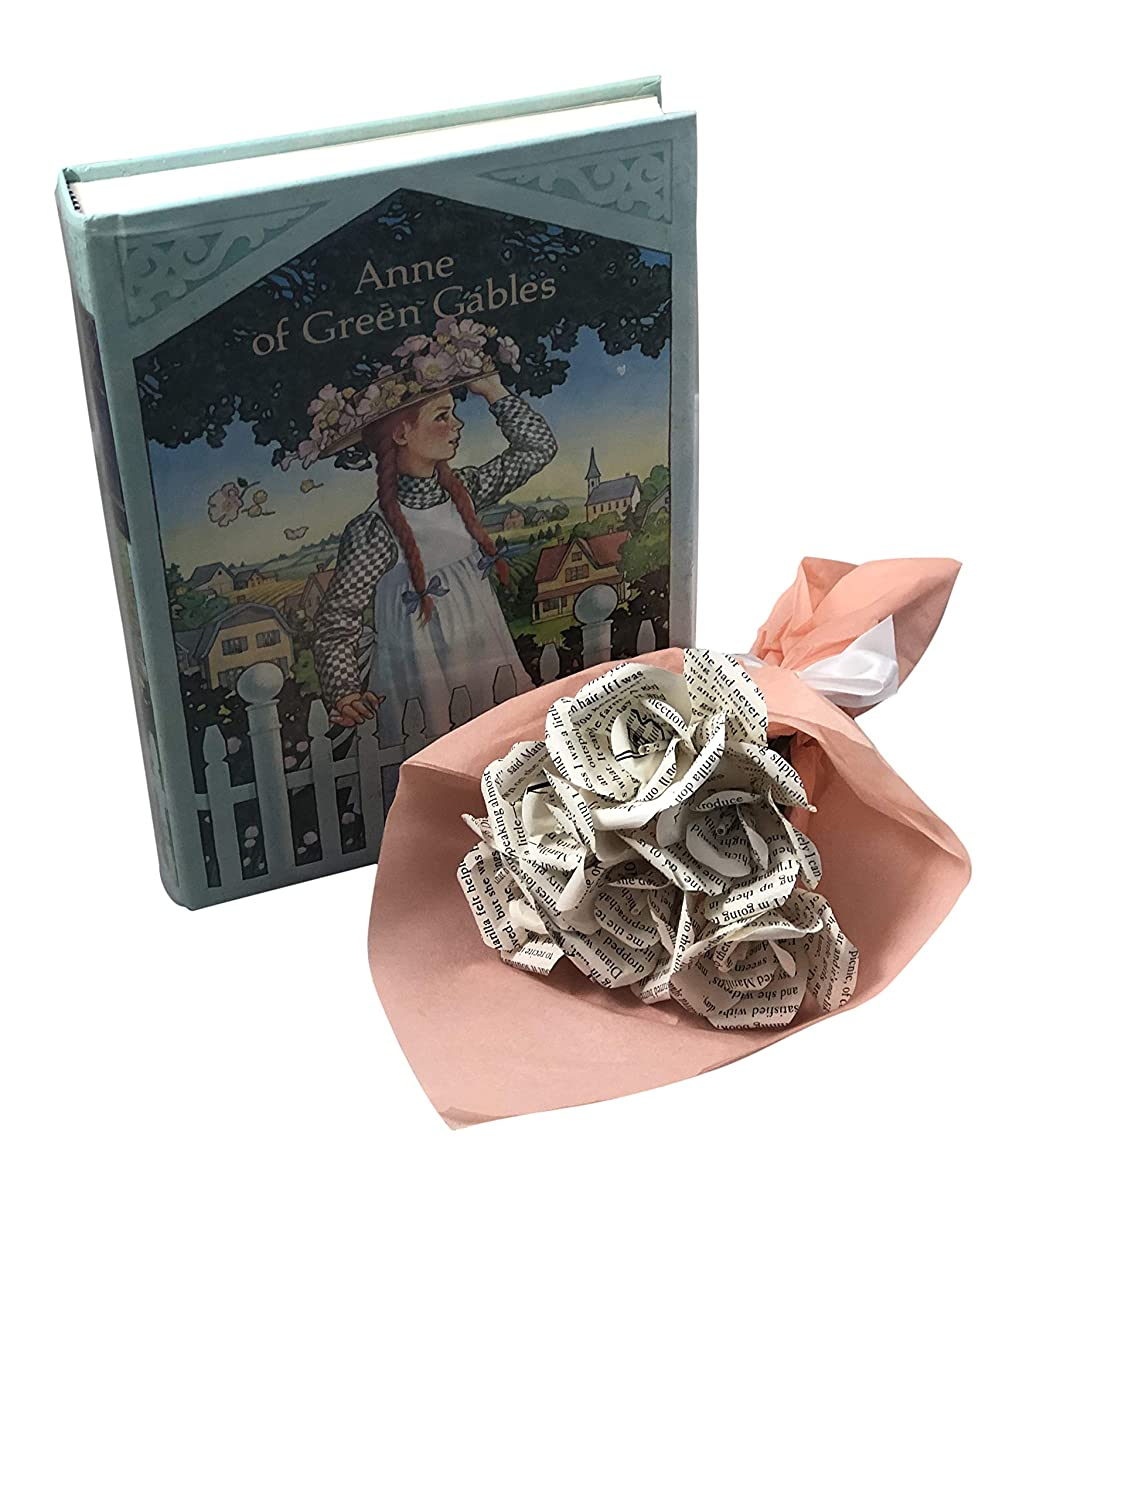 Petite Bouquet of Mini Roses Up-cycled Unique Romantic Gift for Book Lover or Bookworm Anne of Green Gables Book Page Flower